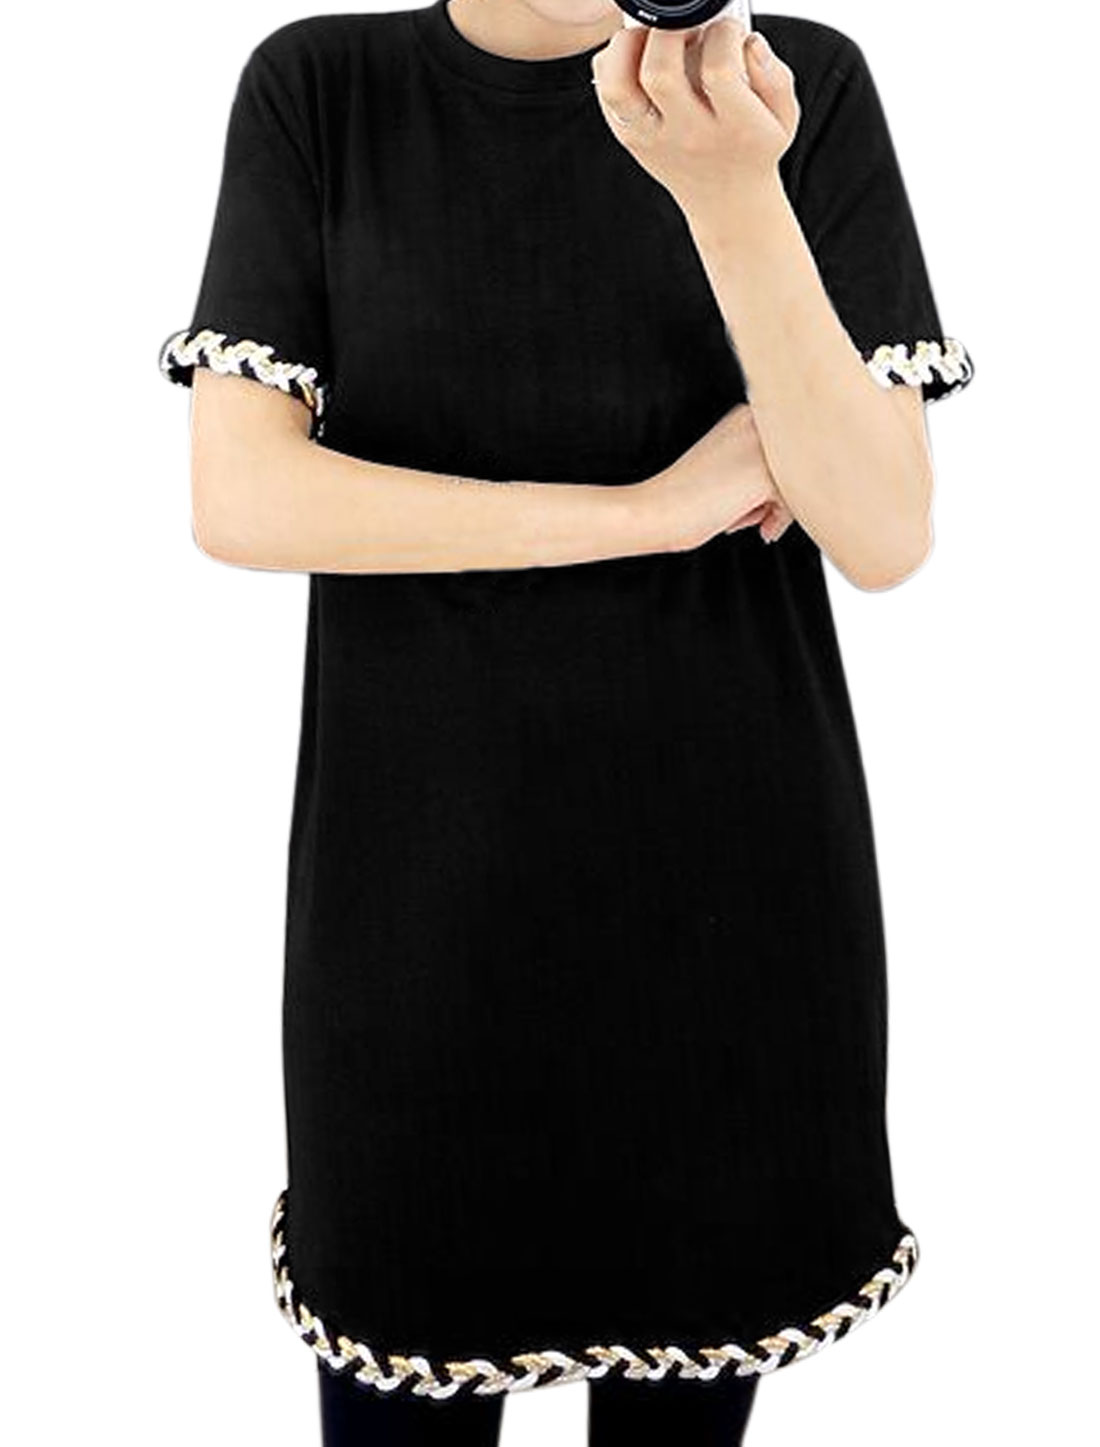 Women Crew Neck Short Sleeves Braids Decor Tunic Dress Black S